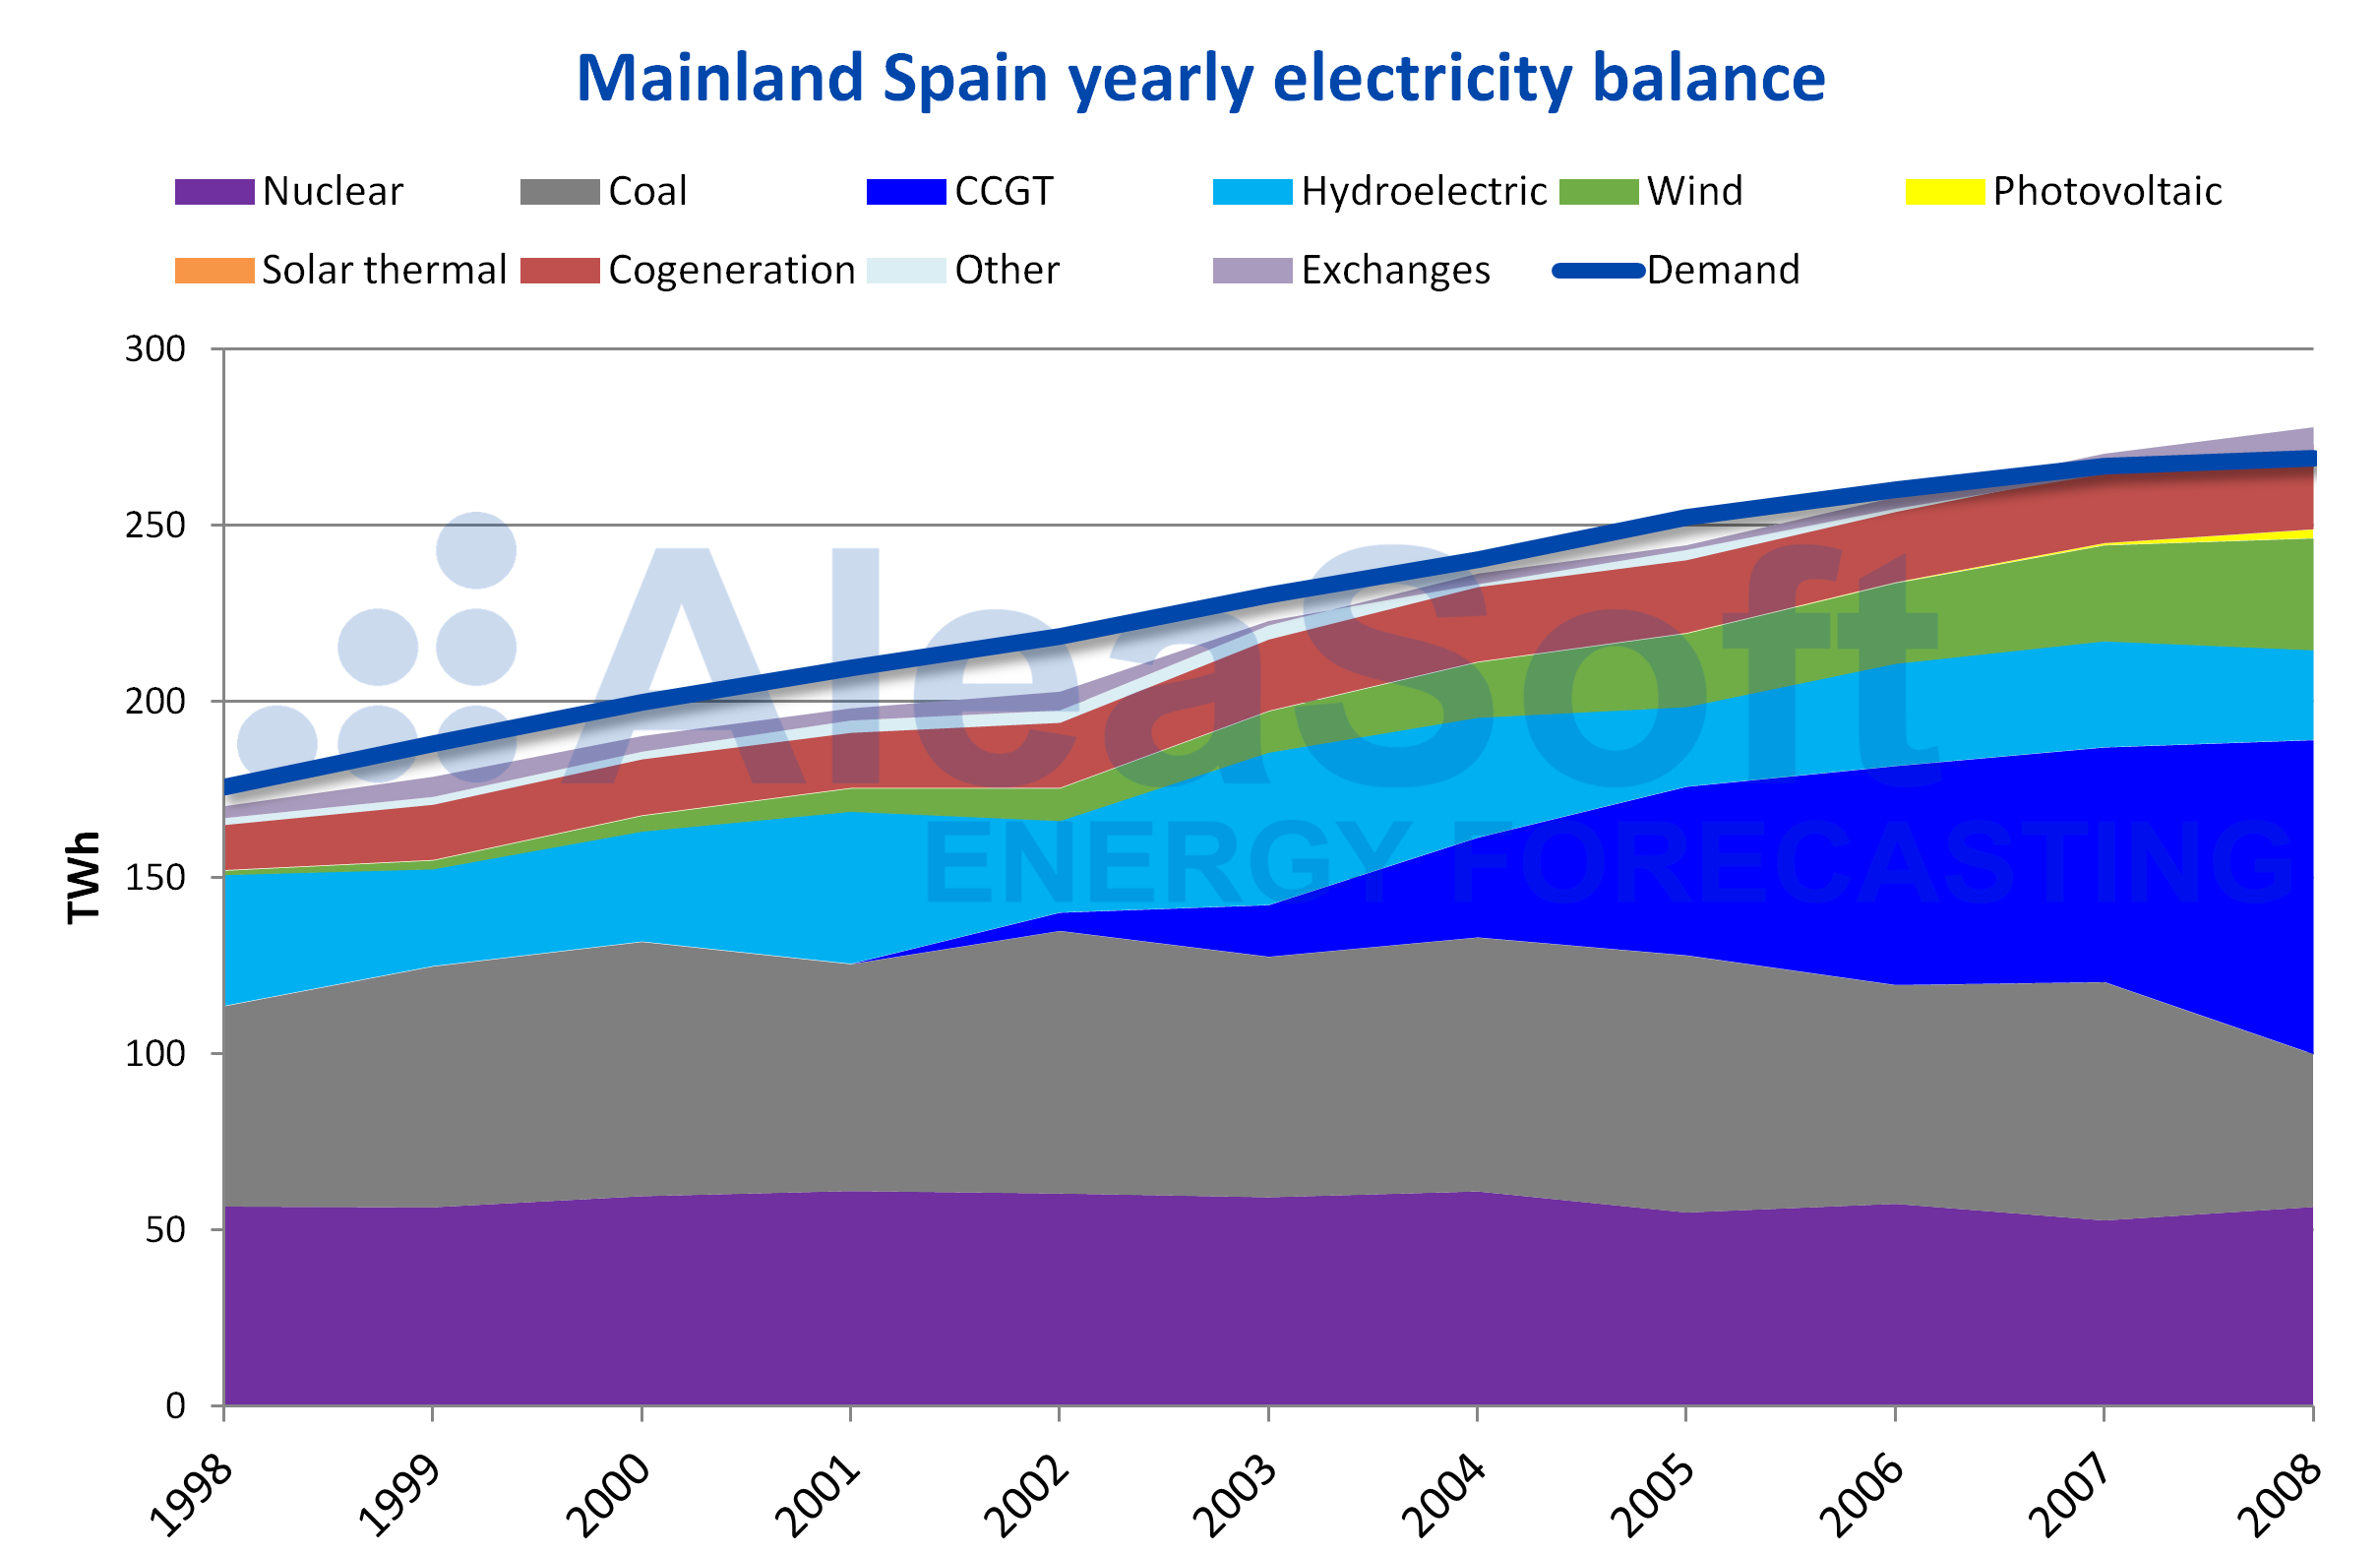 AleaSoft - Mainland Spain yearly electricity balance